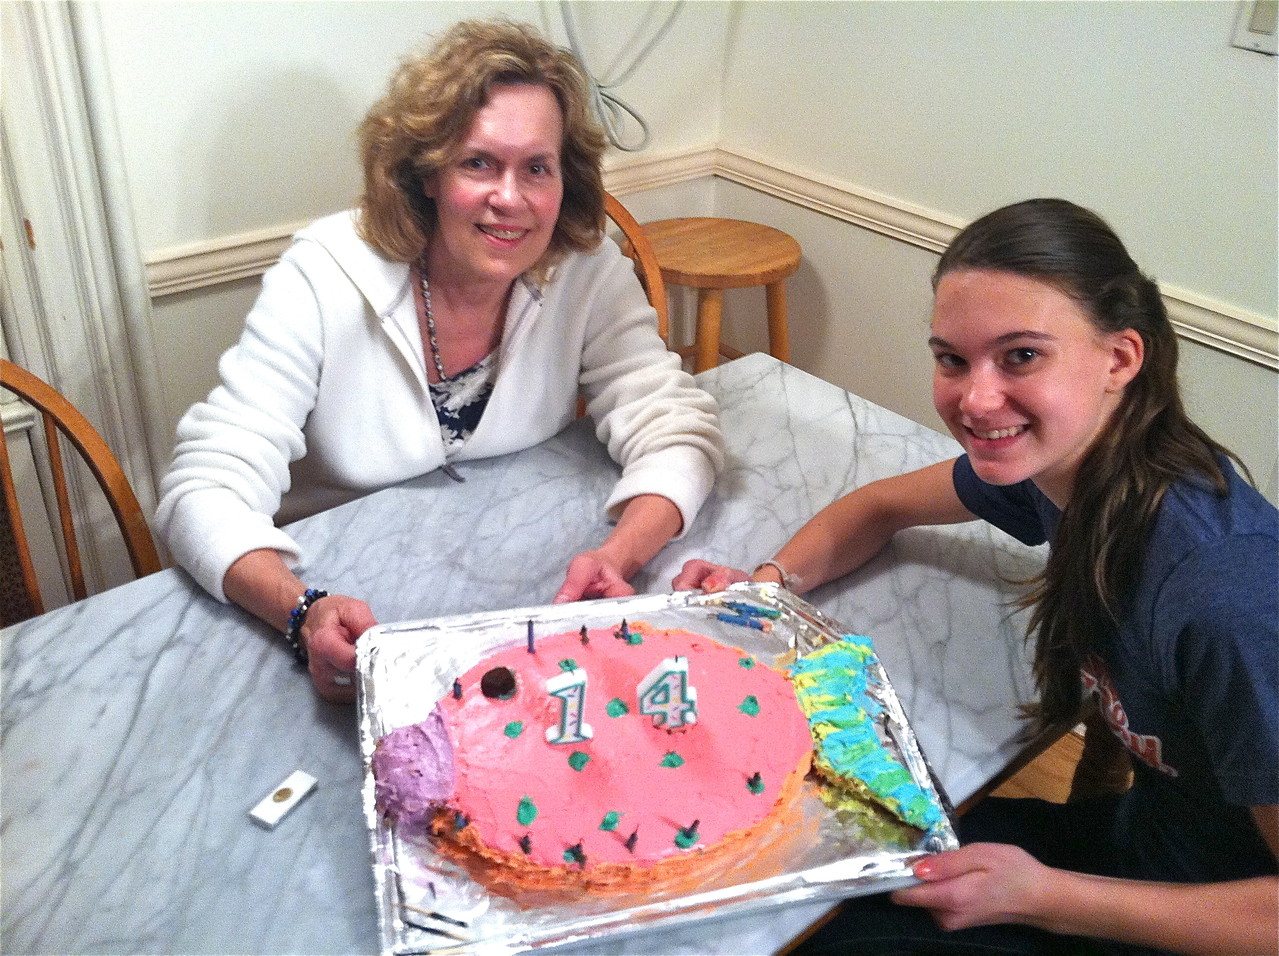 Lorraine & Ellie, May 18, 2013...Celebrating Ellie's 14th Birthday